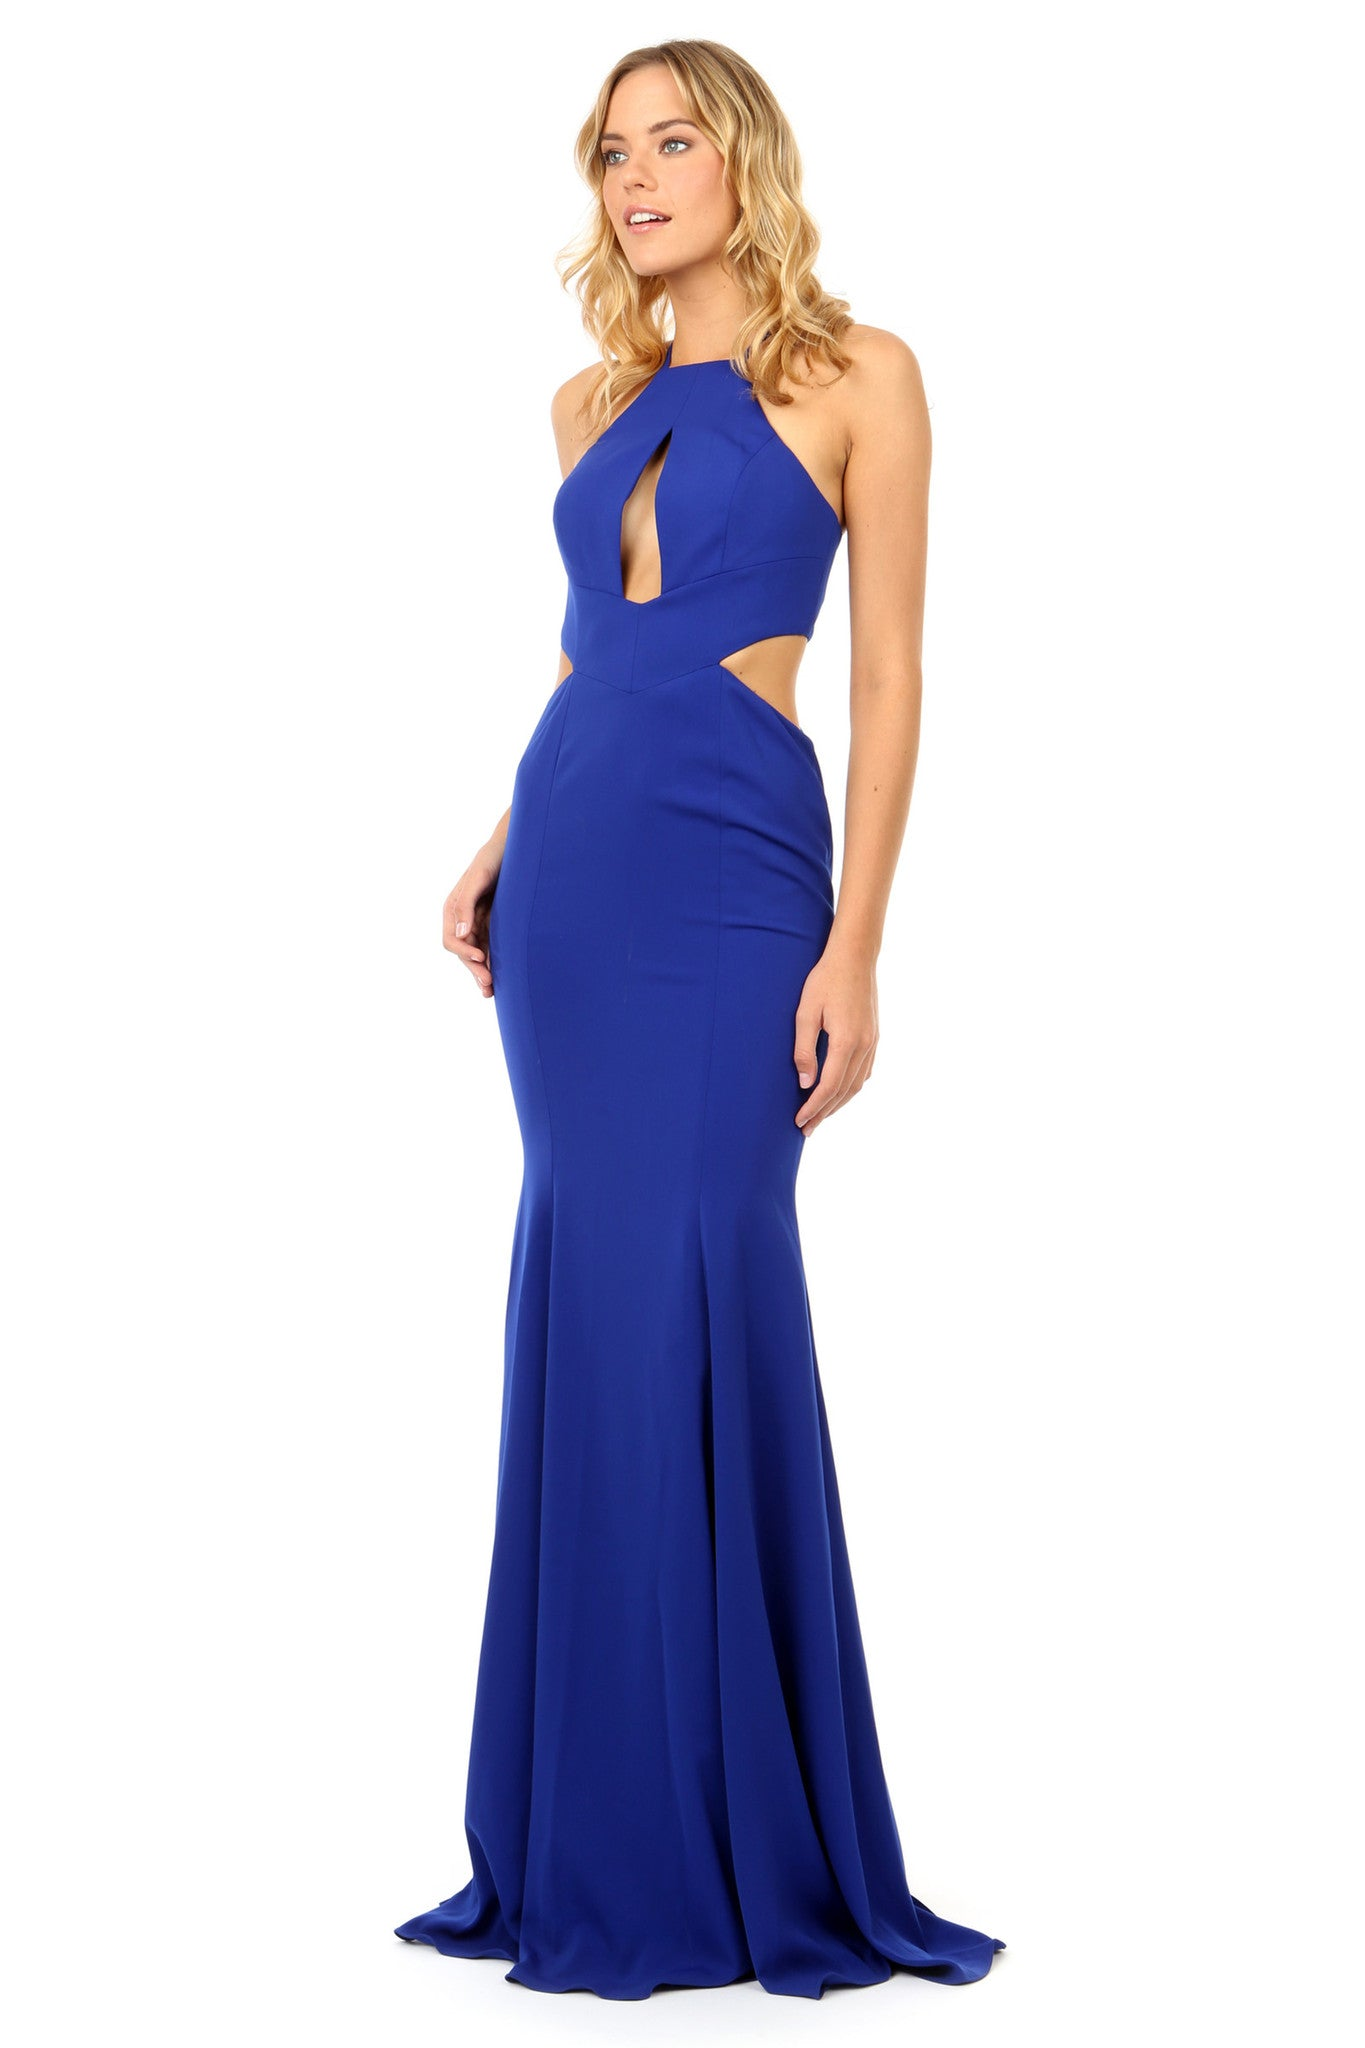 Jay Godfrey Cobalt Cut-Out High Neck Gown - Front View